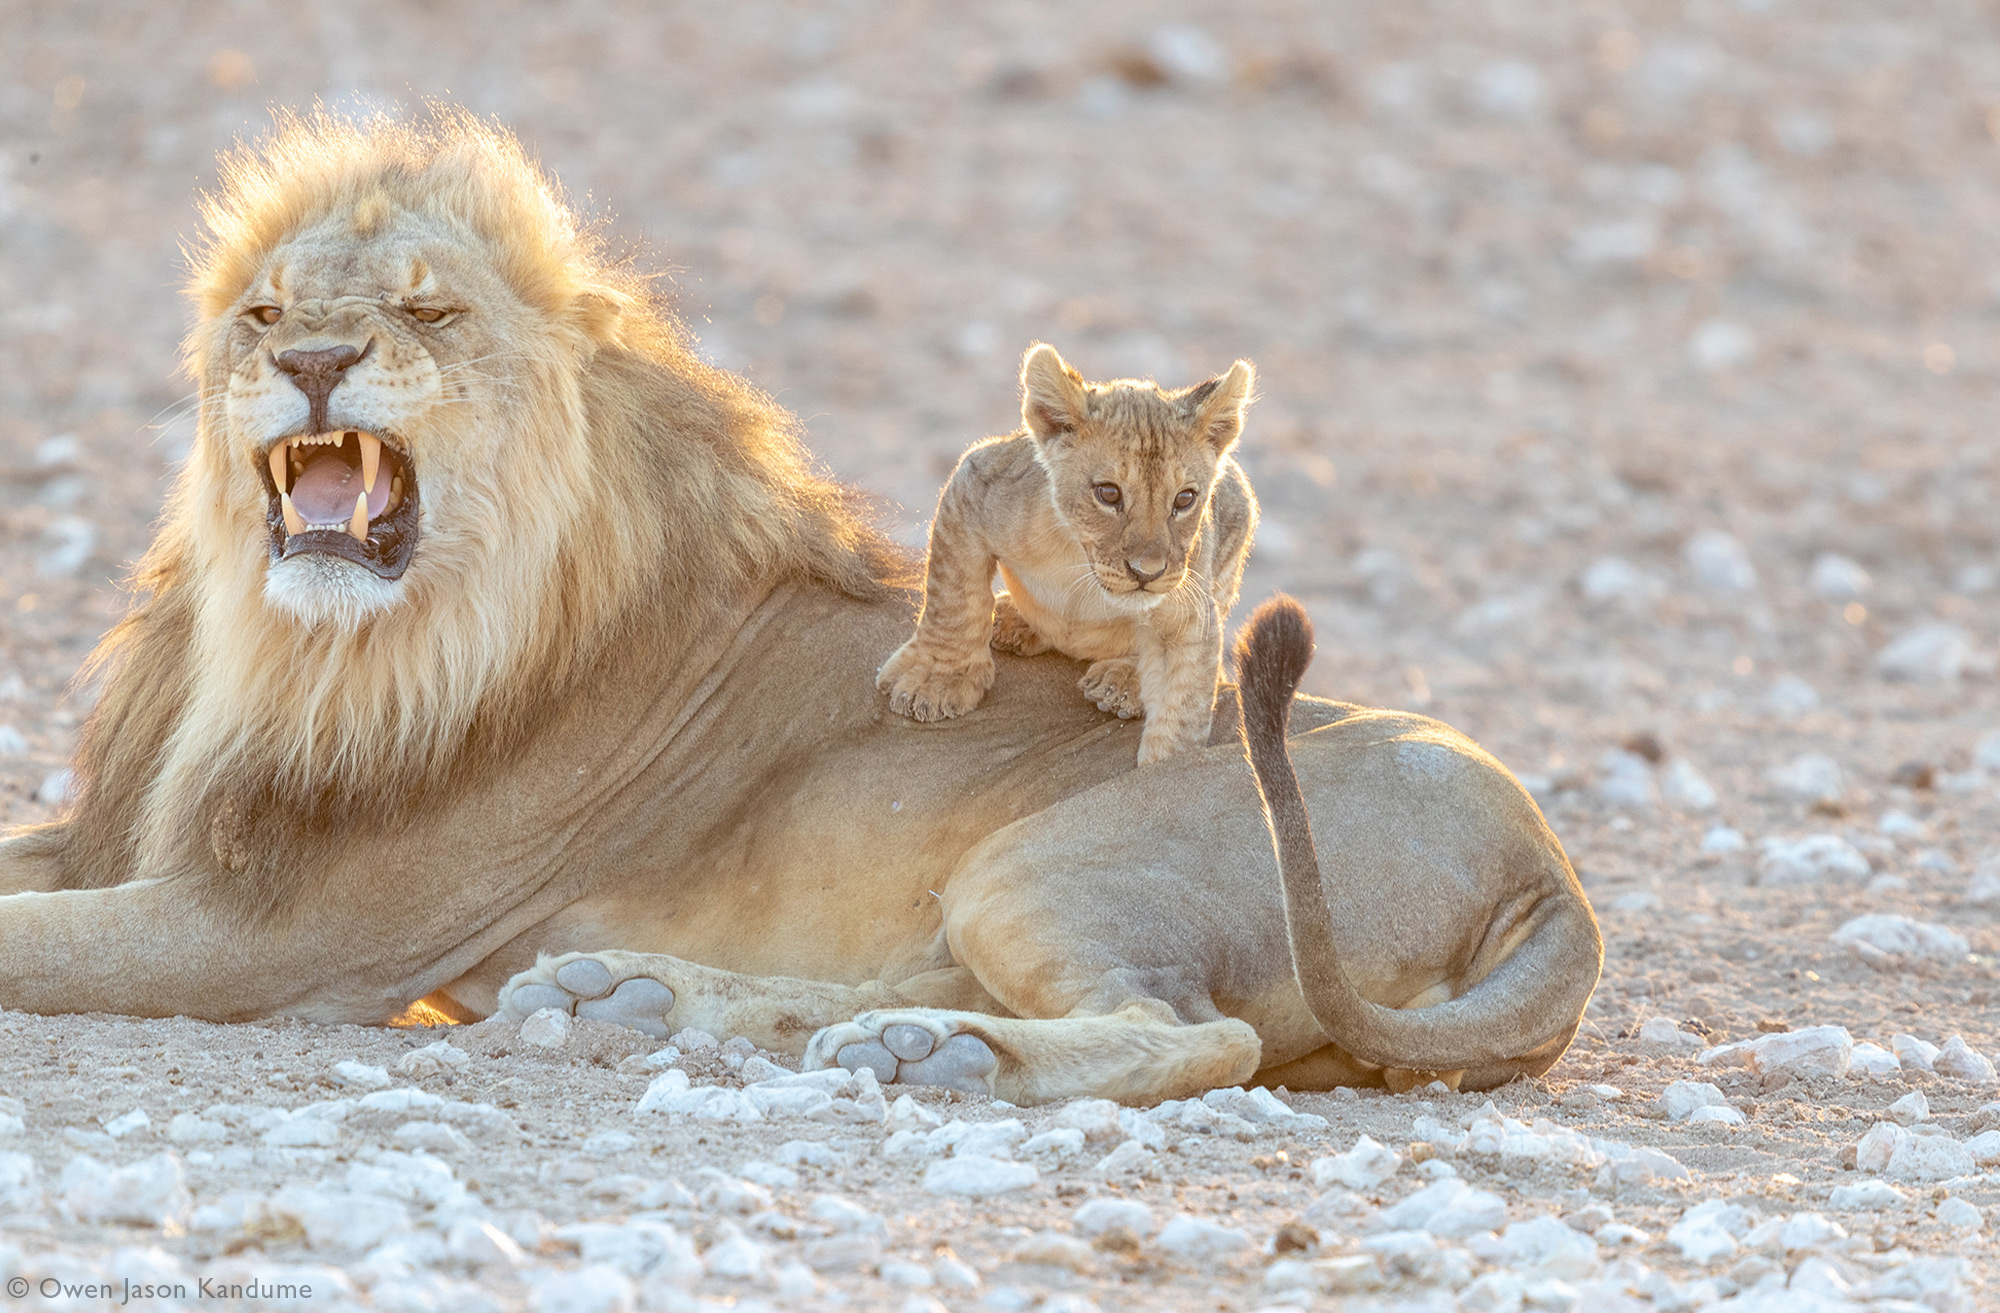 A lion cub getting ready to pounce on his father's tail in Etosha National Park, Namibia